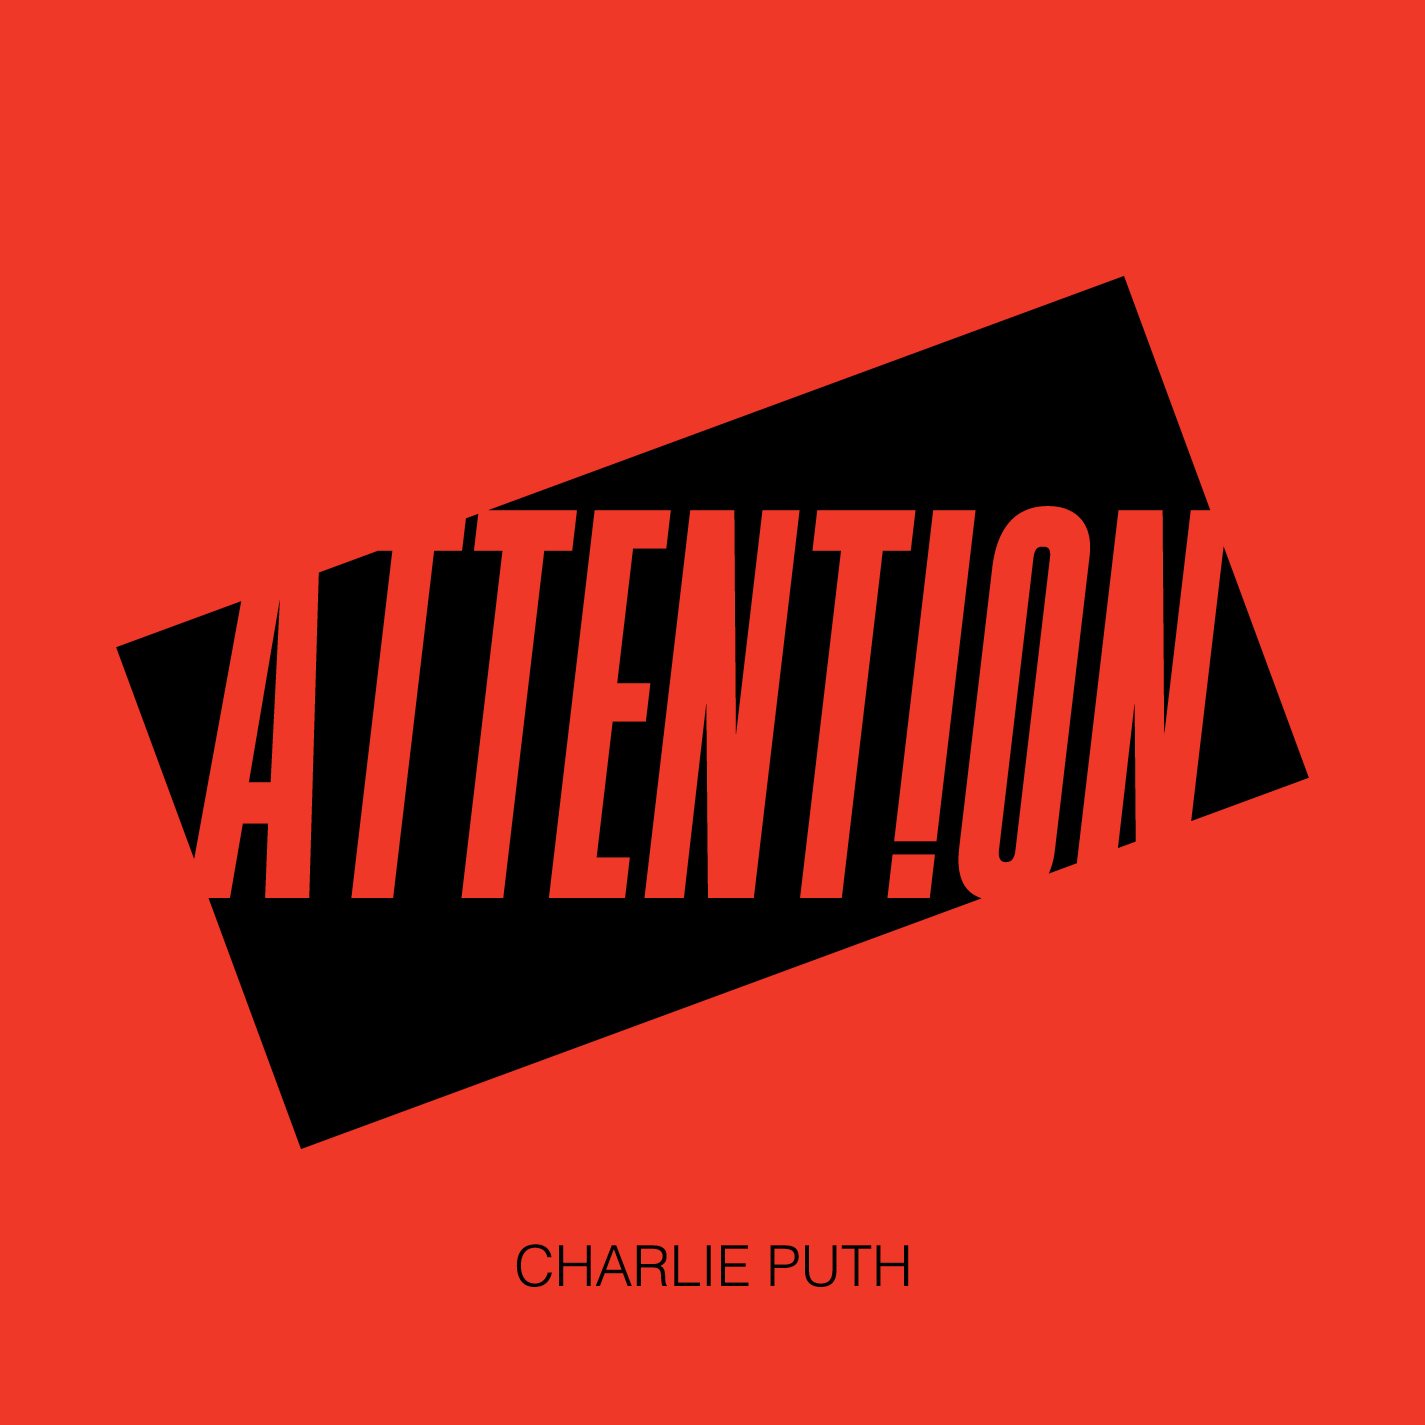 attention charlie puth song